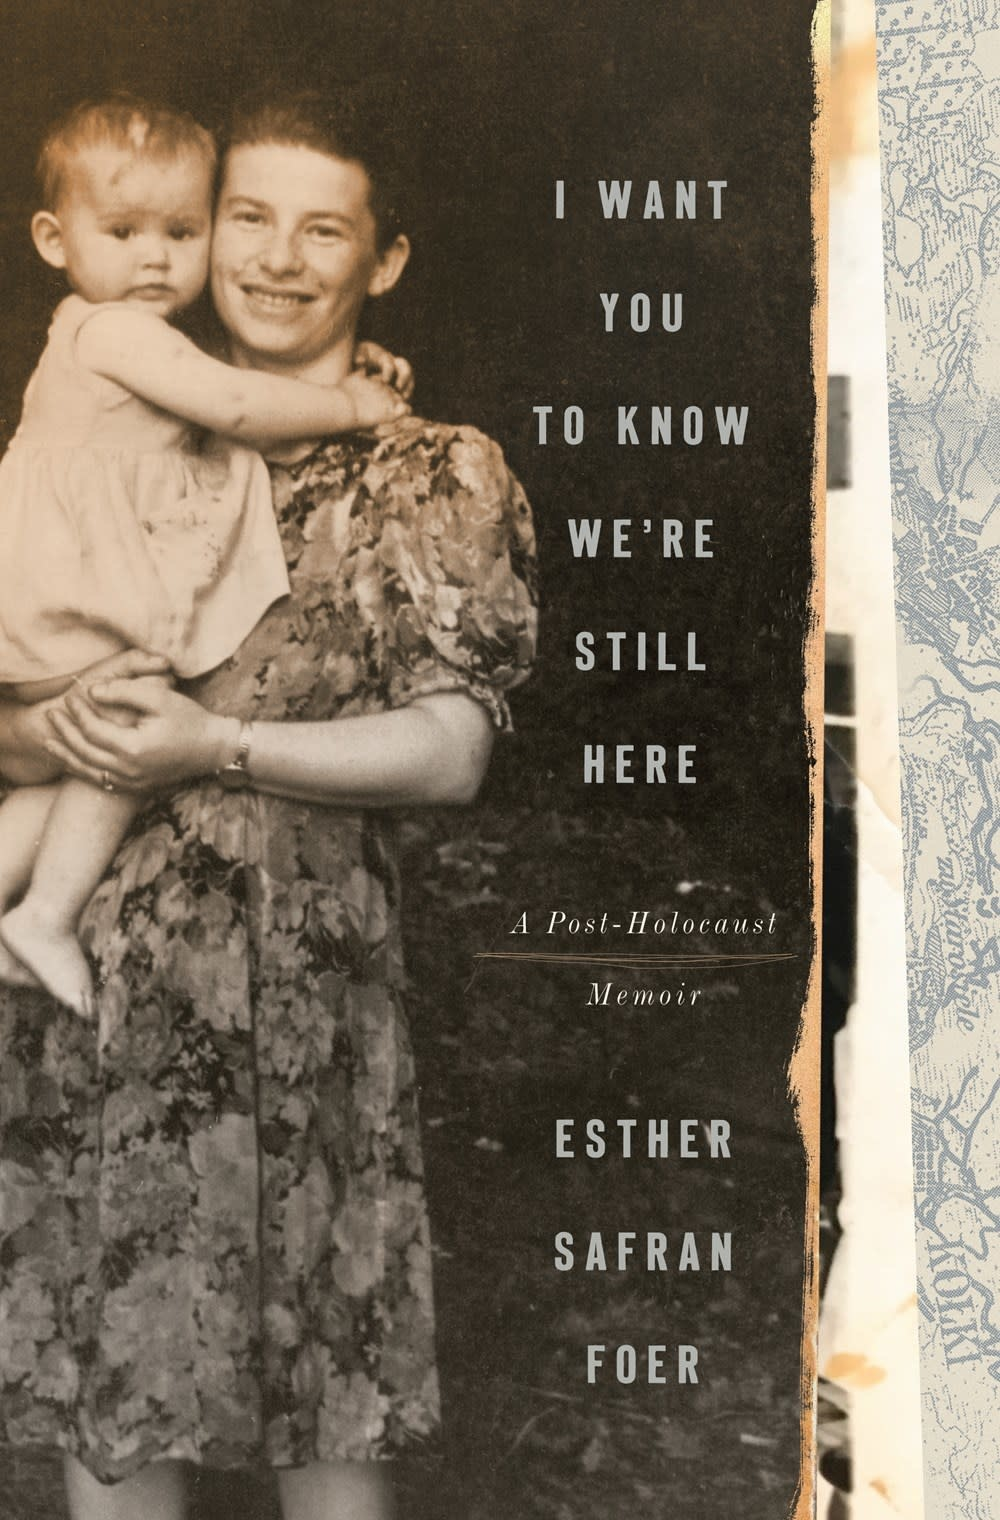 Tim Duggan Books I Want You to Know We're Still Here: A Post-Holocaust Memoir